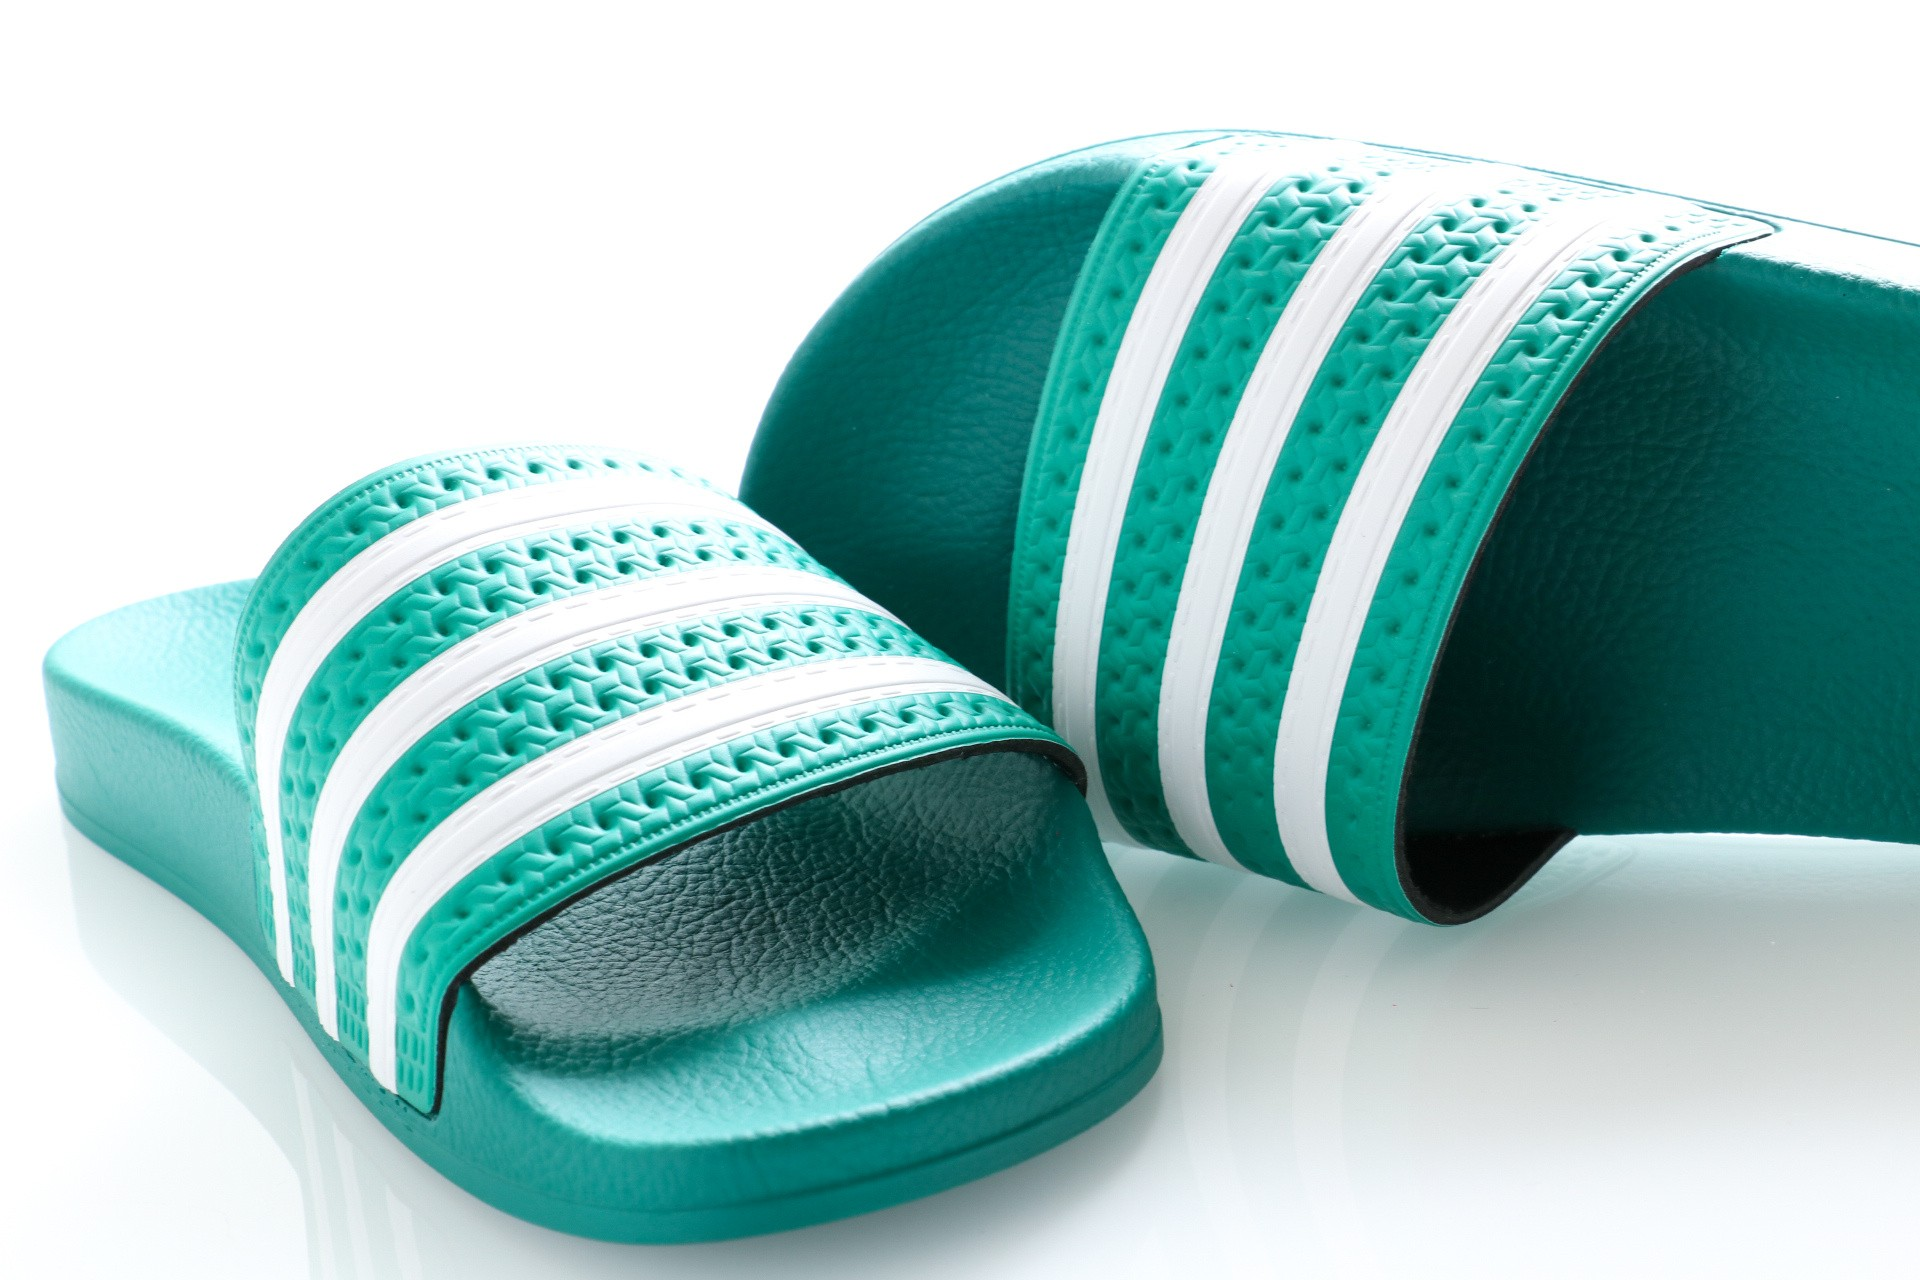 Afbeelding van Adidas Slipper Adilette glory green/ftwr white/glory green EF5431